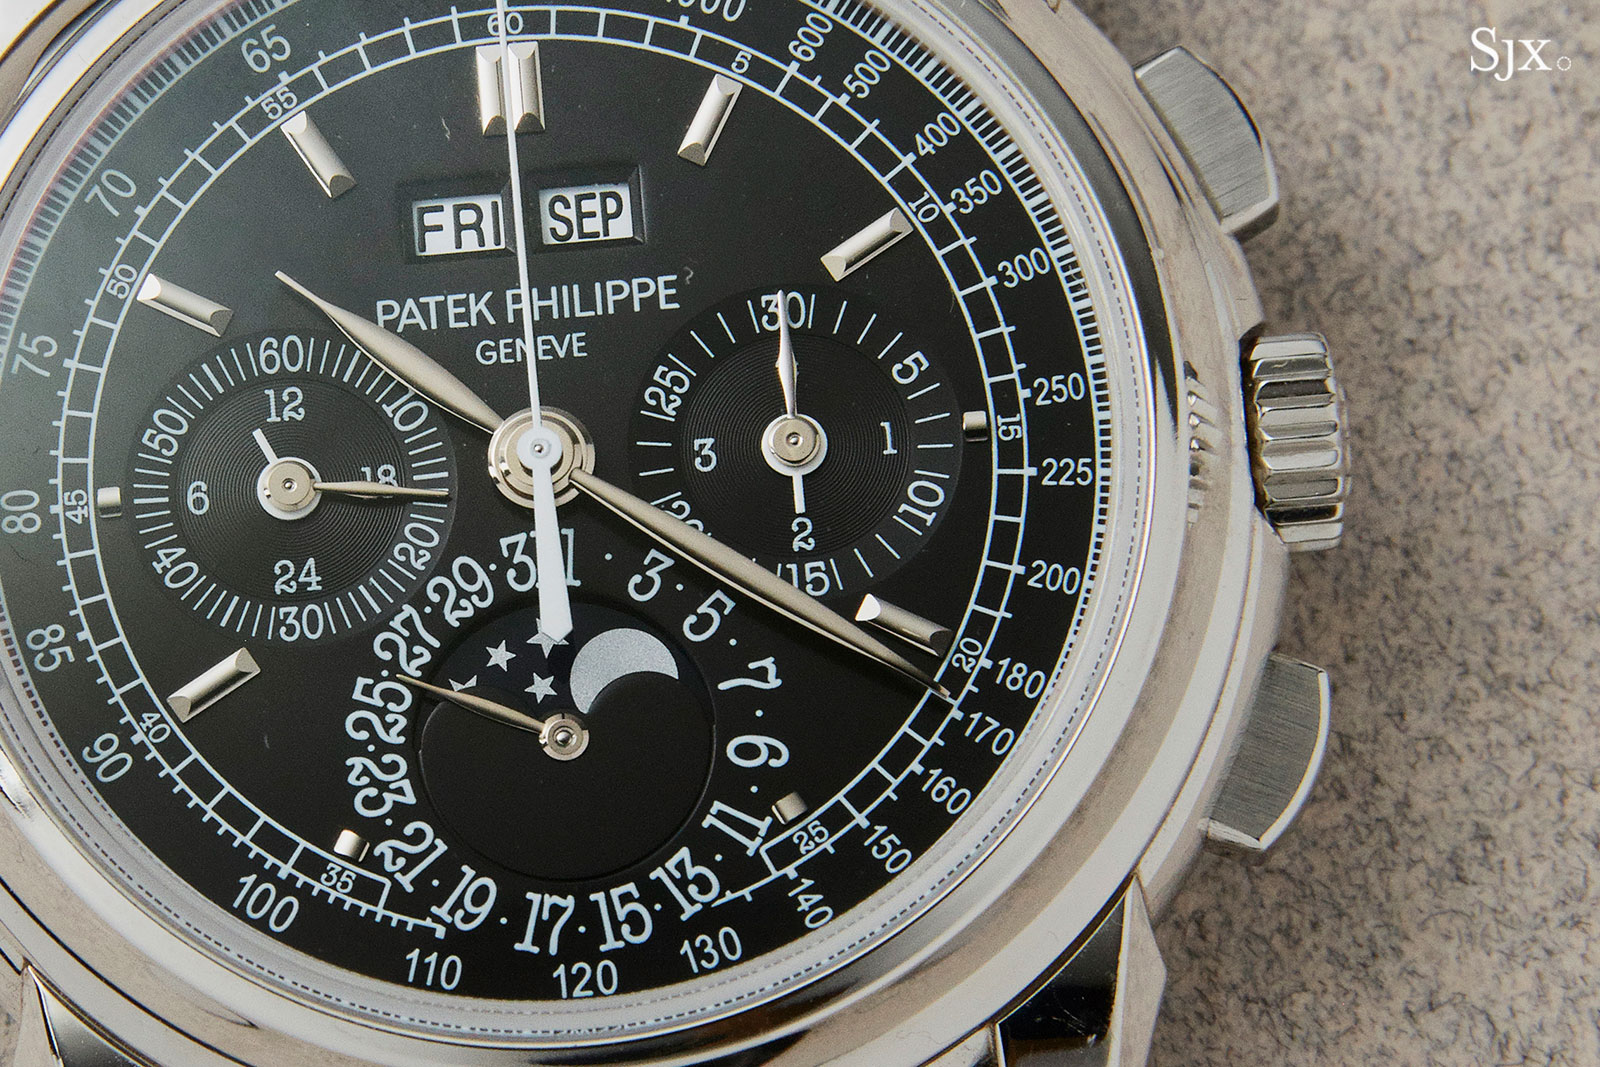 Patek 5970P phillips HK 1